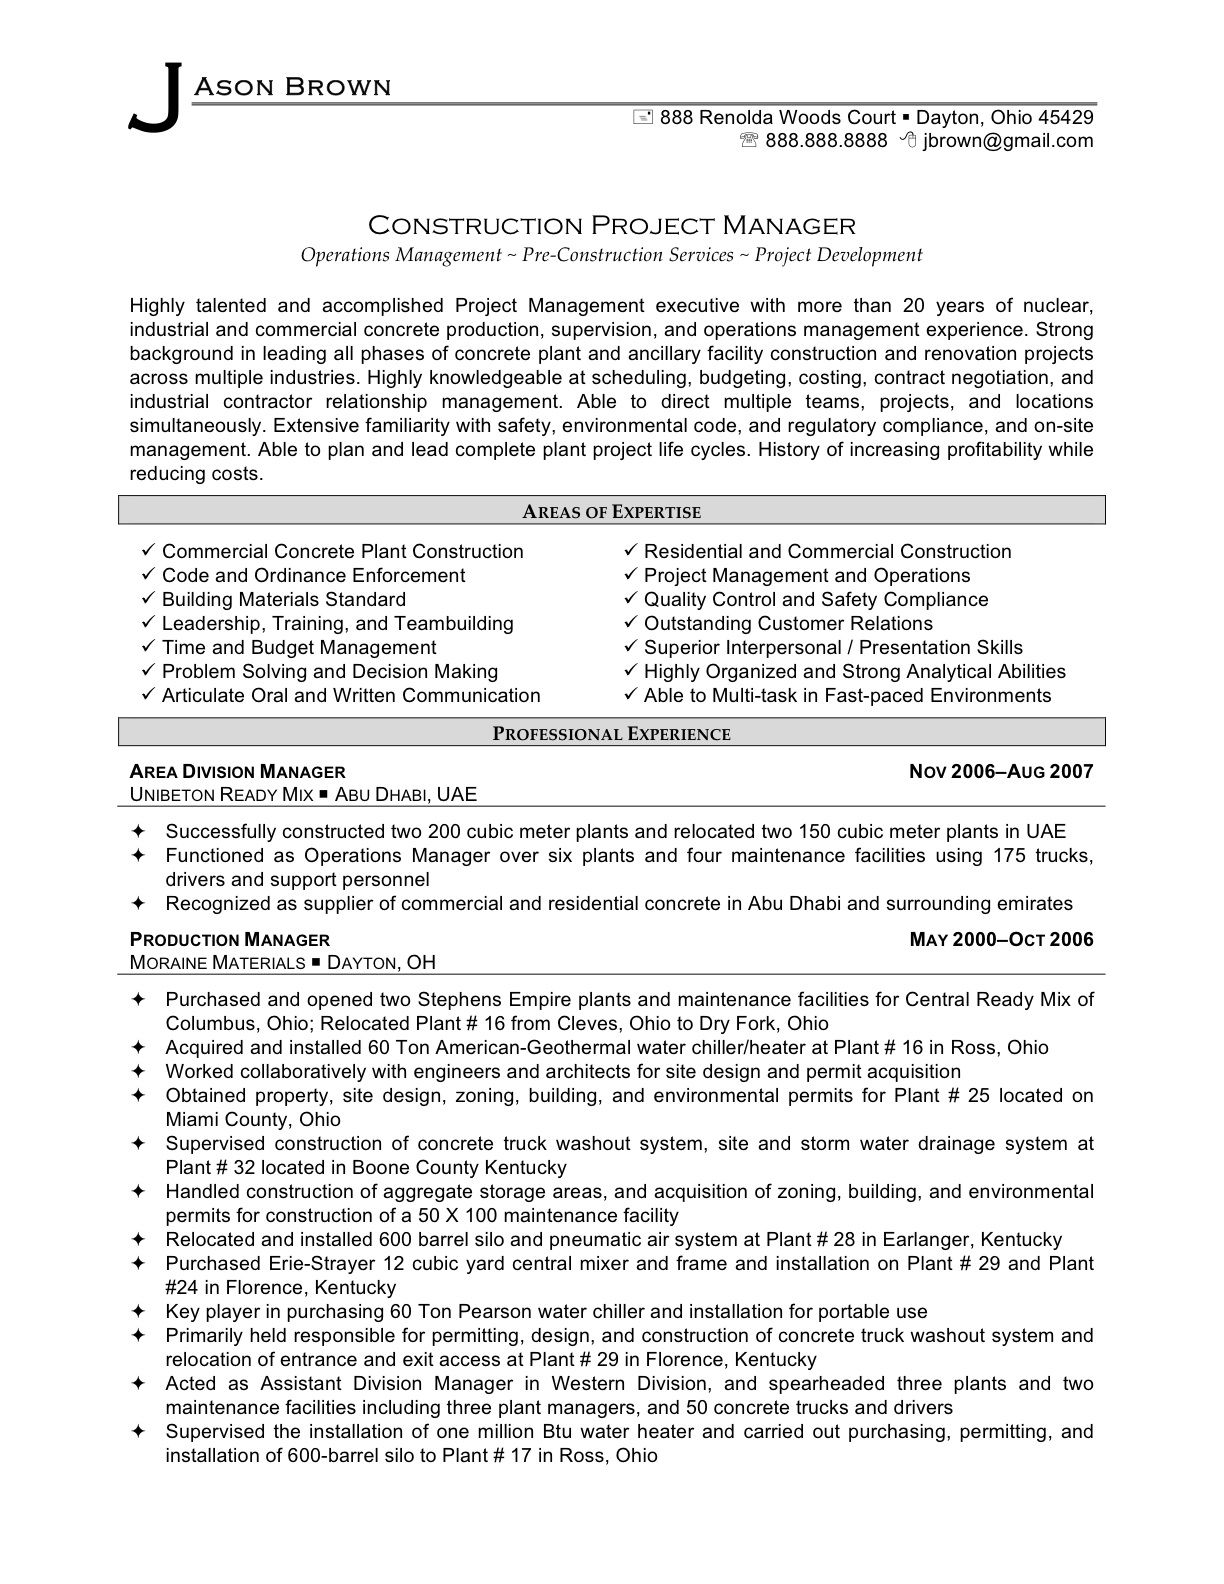 resume templates project manager residential or commercial superintendentproject manager - Resume Sample For Project Manager